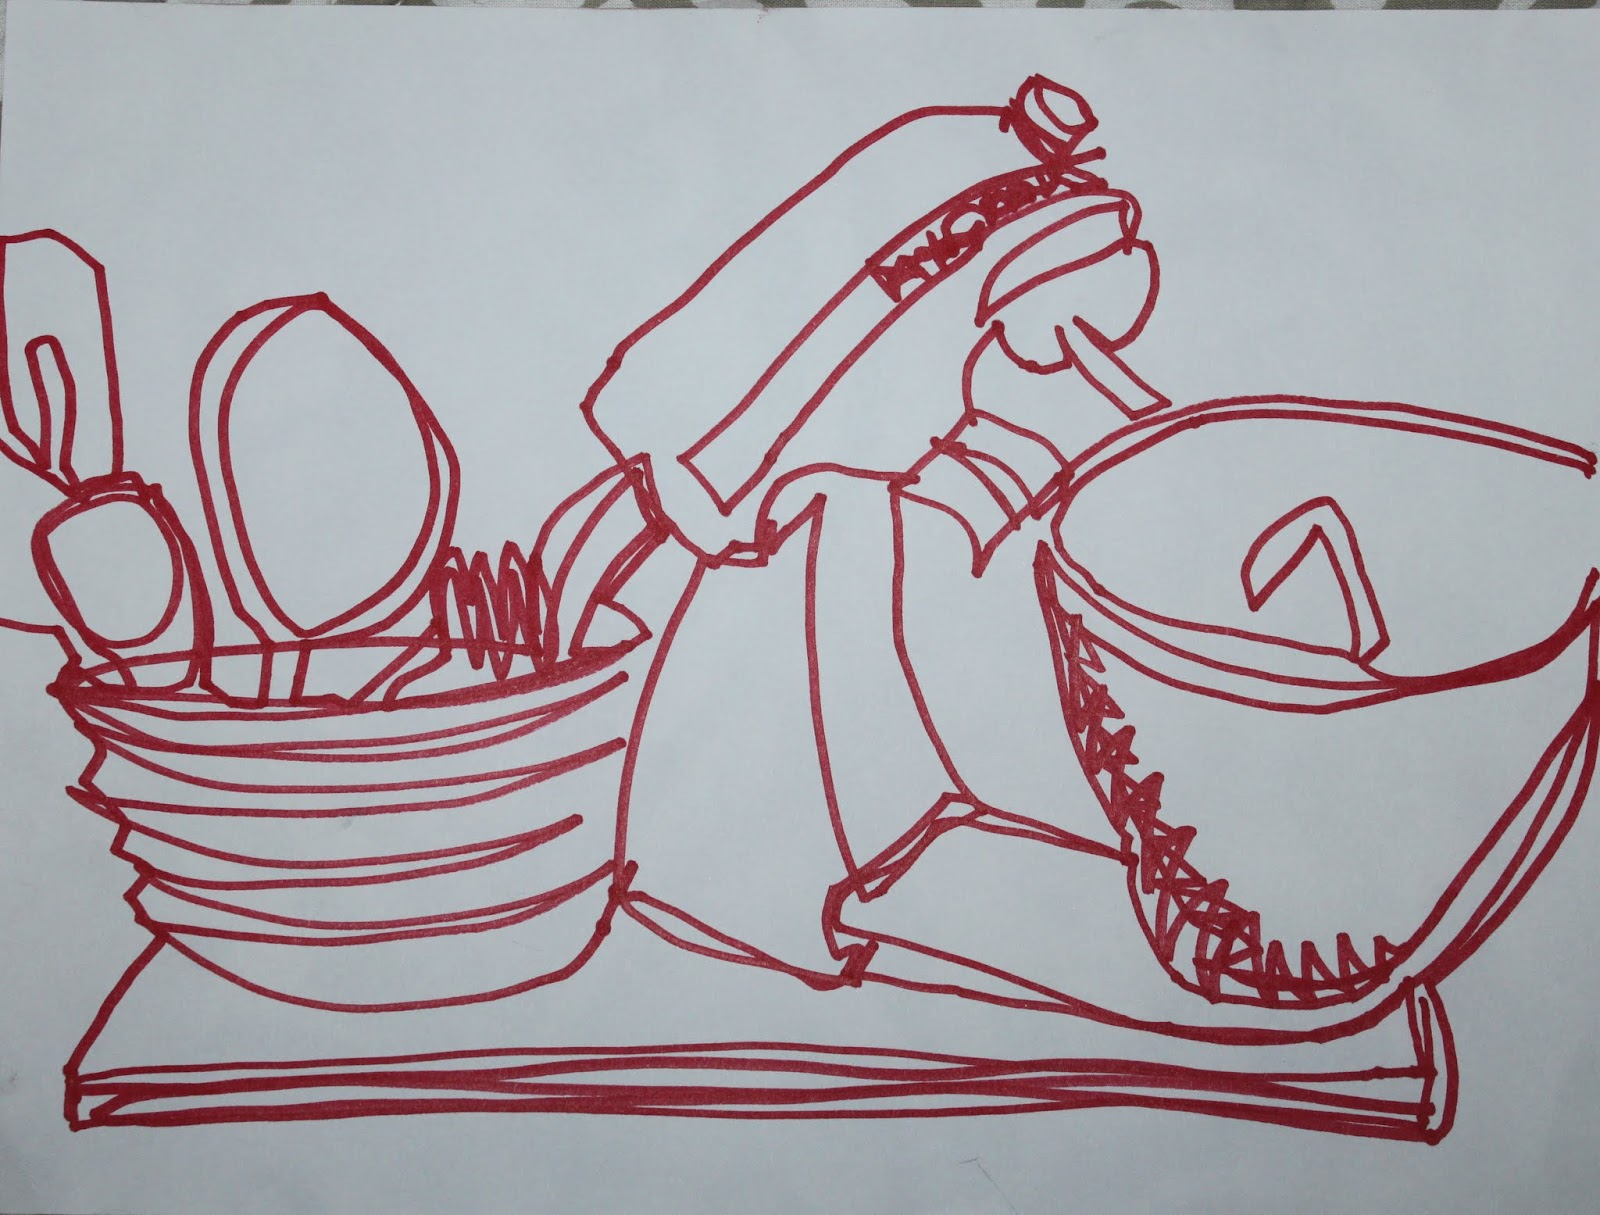 Continuous Contour Line Drawing Definition : Evan's drawing blog: september 2012